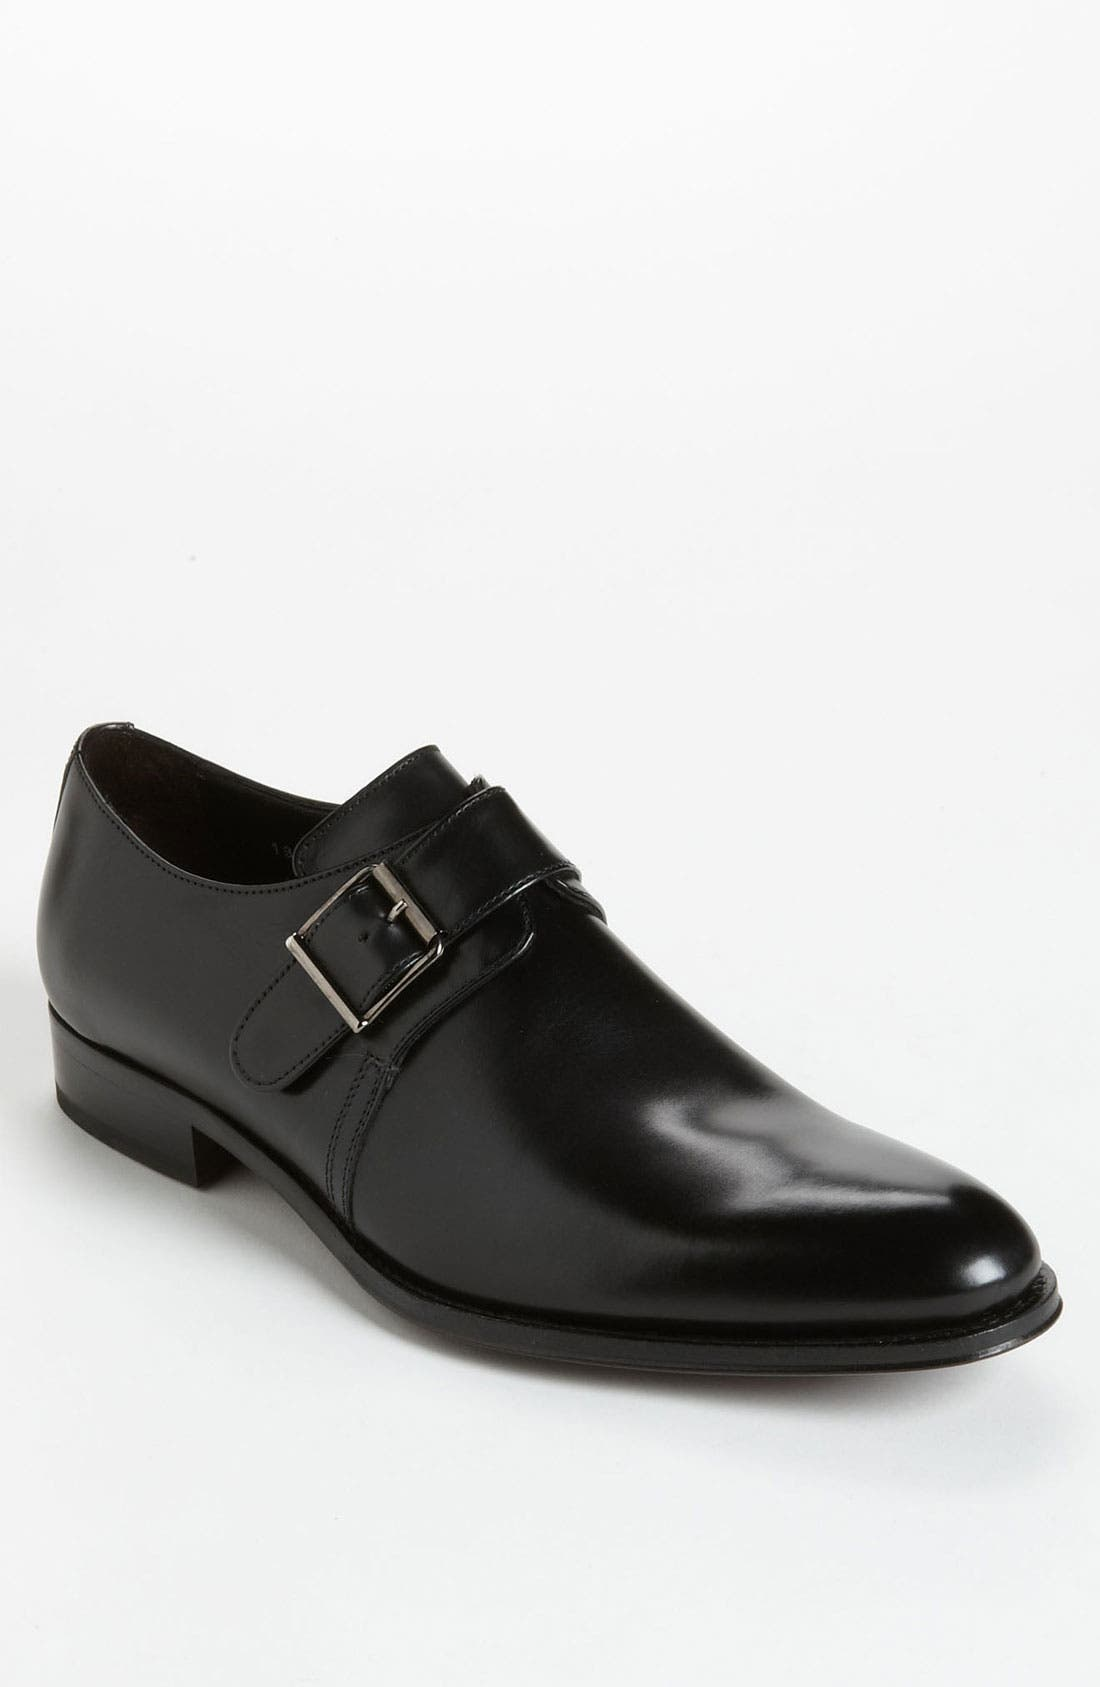 Alternate Image 1 Selected - To Boot New York 'Campbell' Monk Strap Slip-On